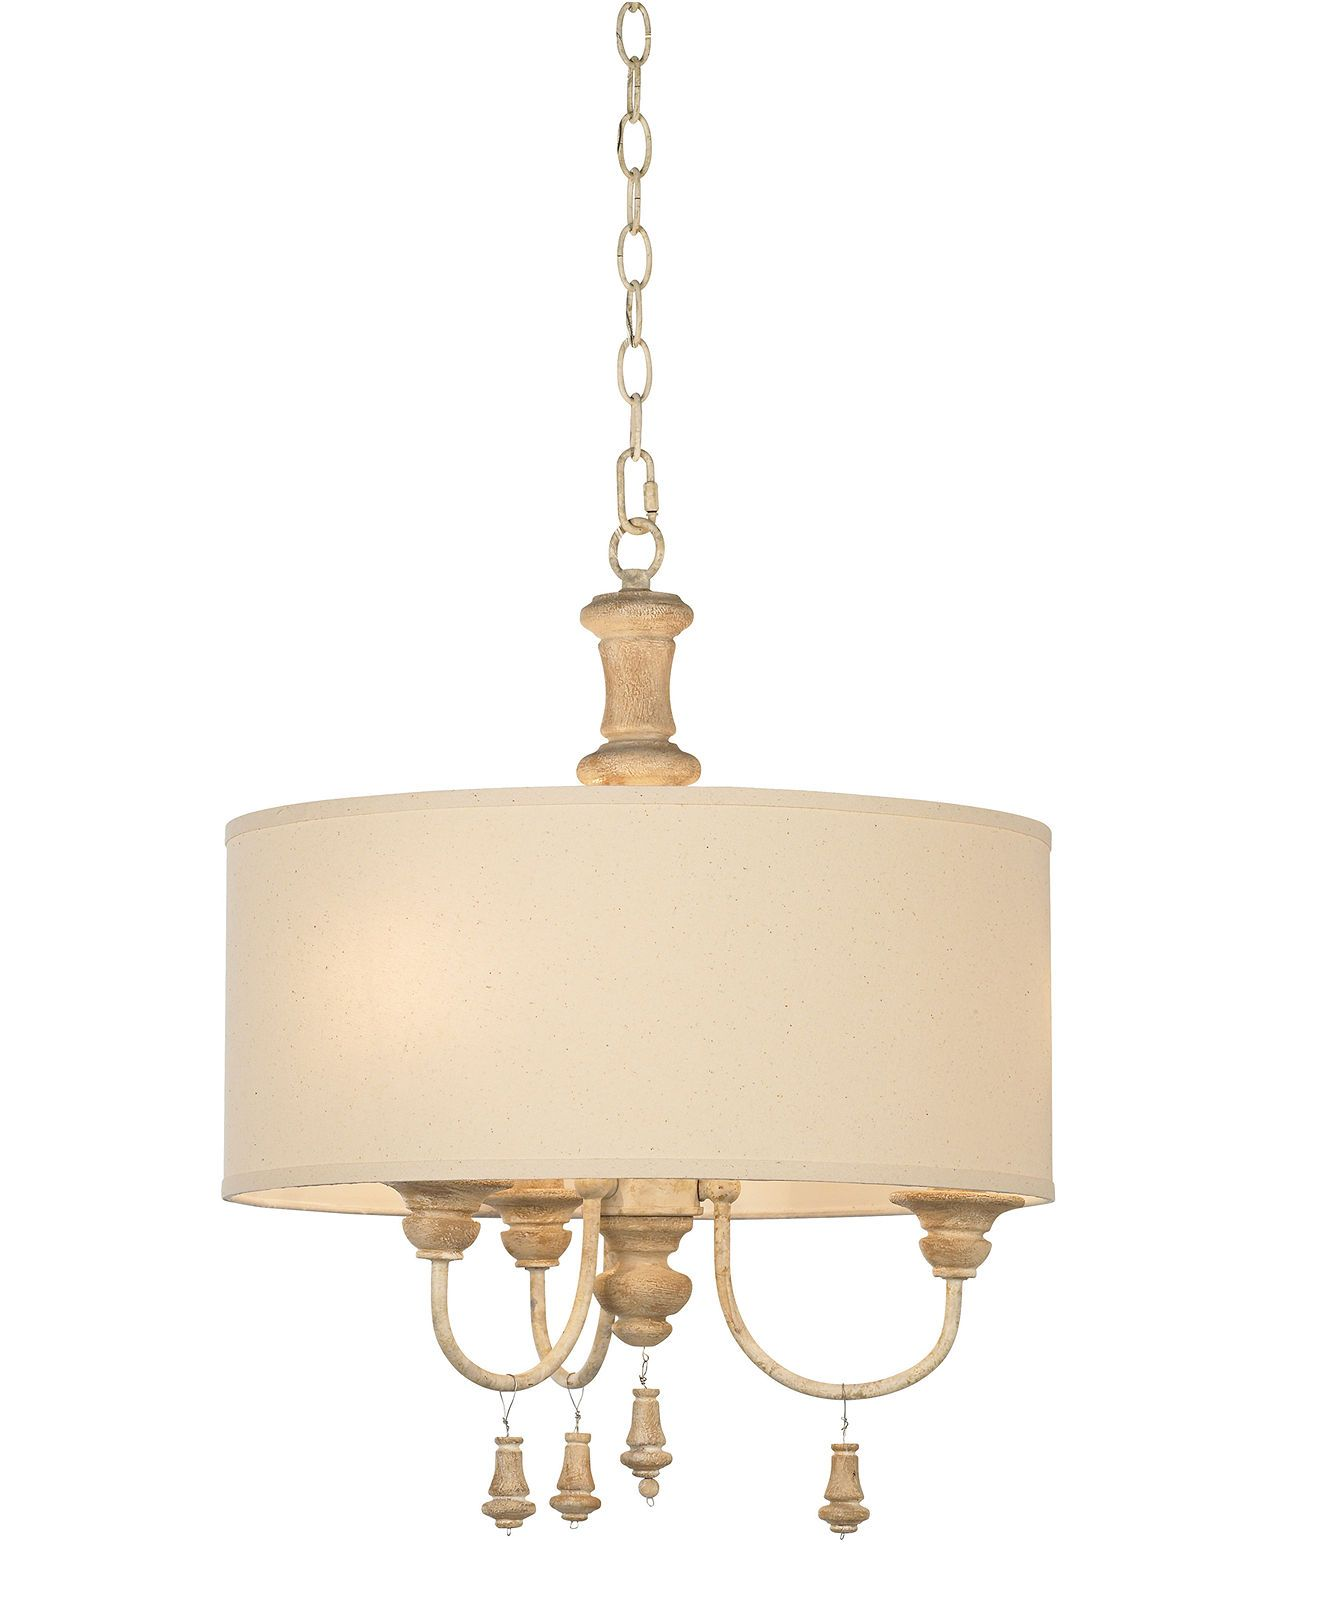 pretty | For the Home | Pinterest | Lighting online, Chandeliers ...